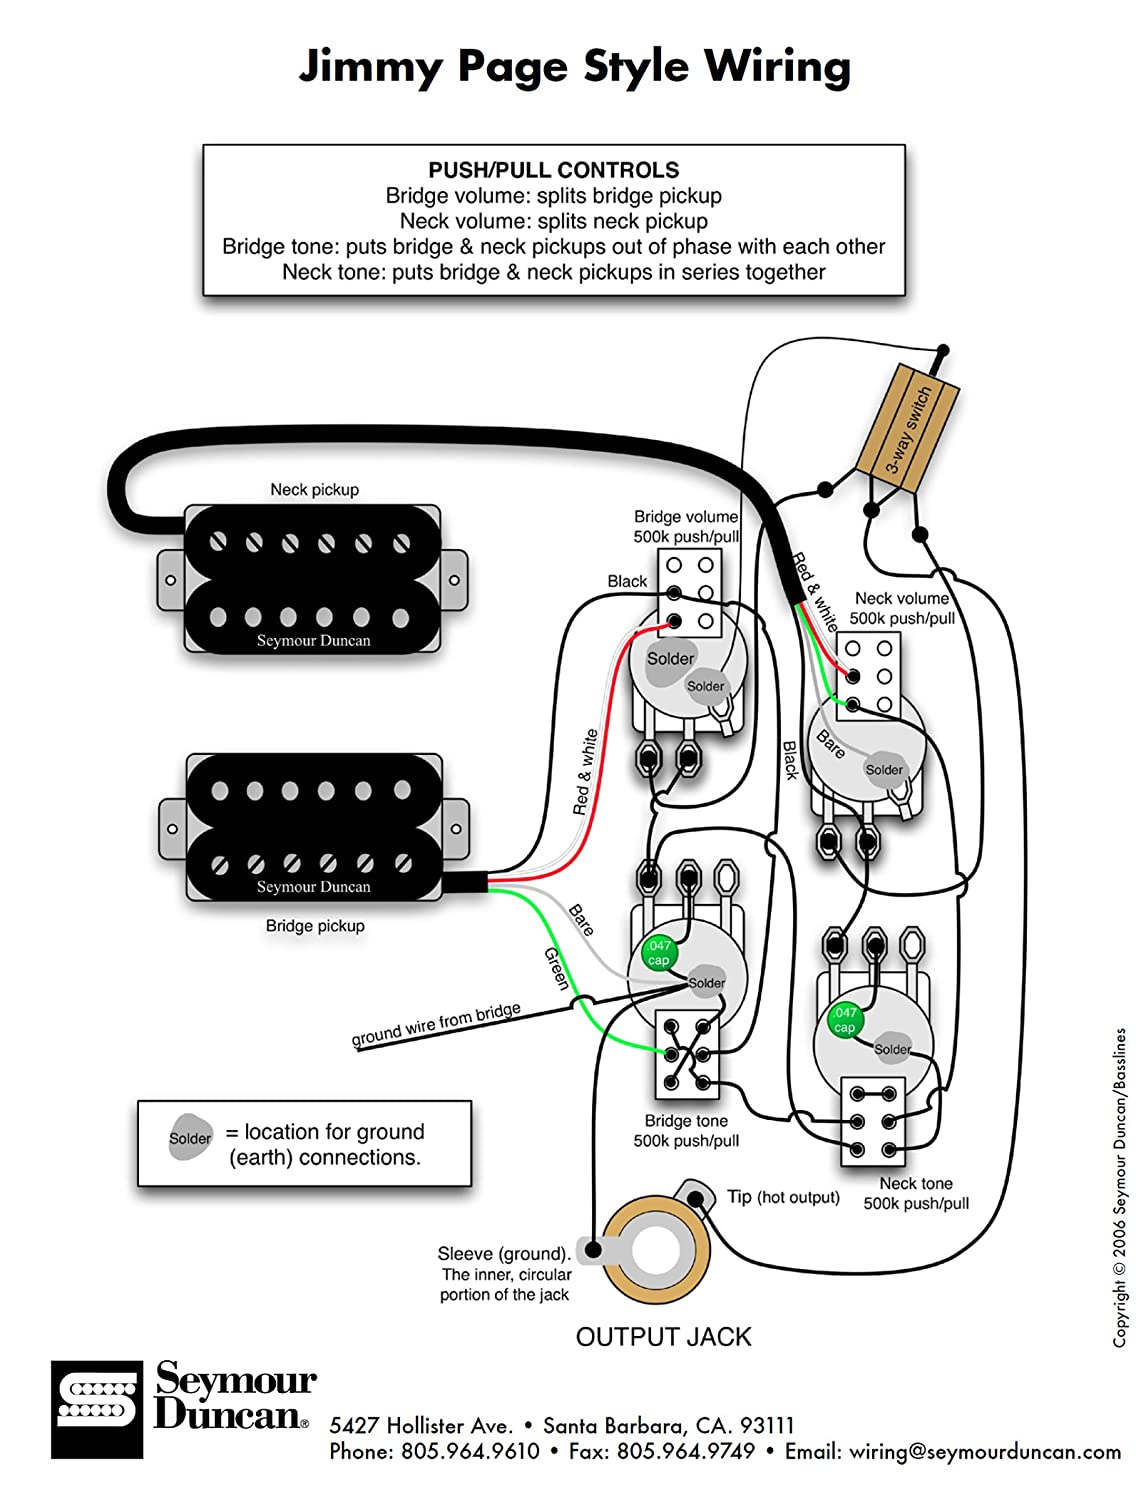 Unusual Dimarzio Pickup Wiring Color Code Tall Ibanez Hsh Shaped Ibanez Dimarzio Stratocaster Wiring Options Young Solar Panels Wiring Diagram Installation BrightSolar Panel Wire Diagram Amazon.com: 920D Custom Shop Les Paul Jimmy Page Wiring Harness W ..